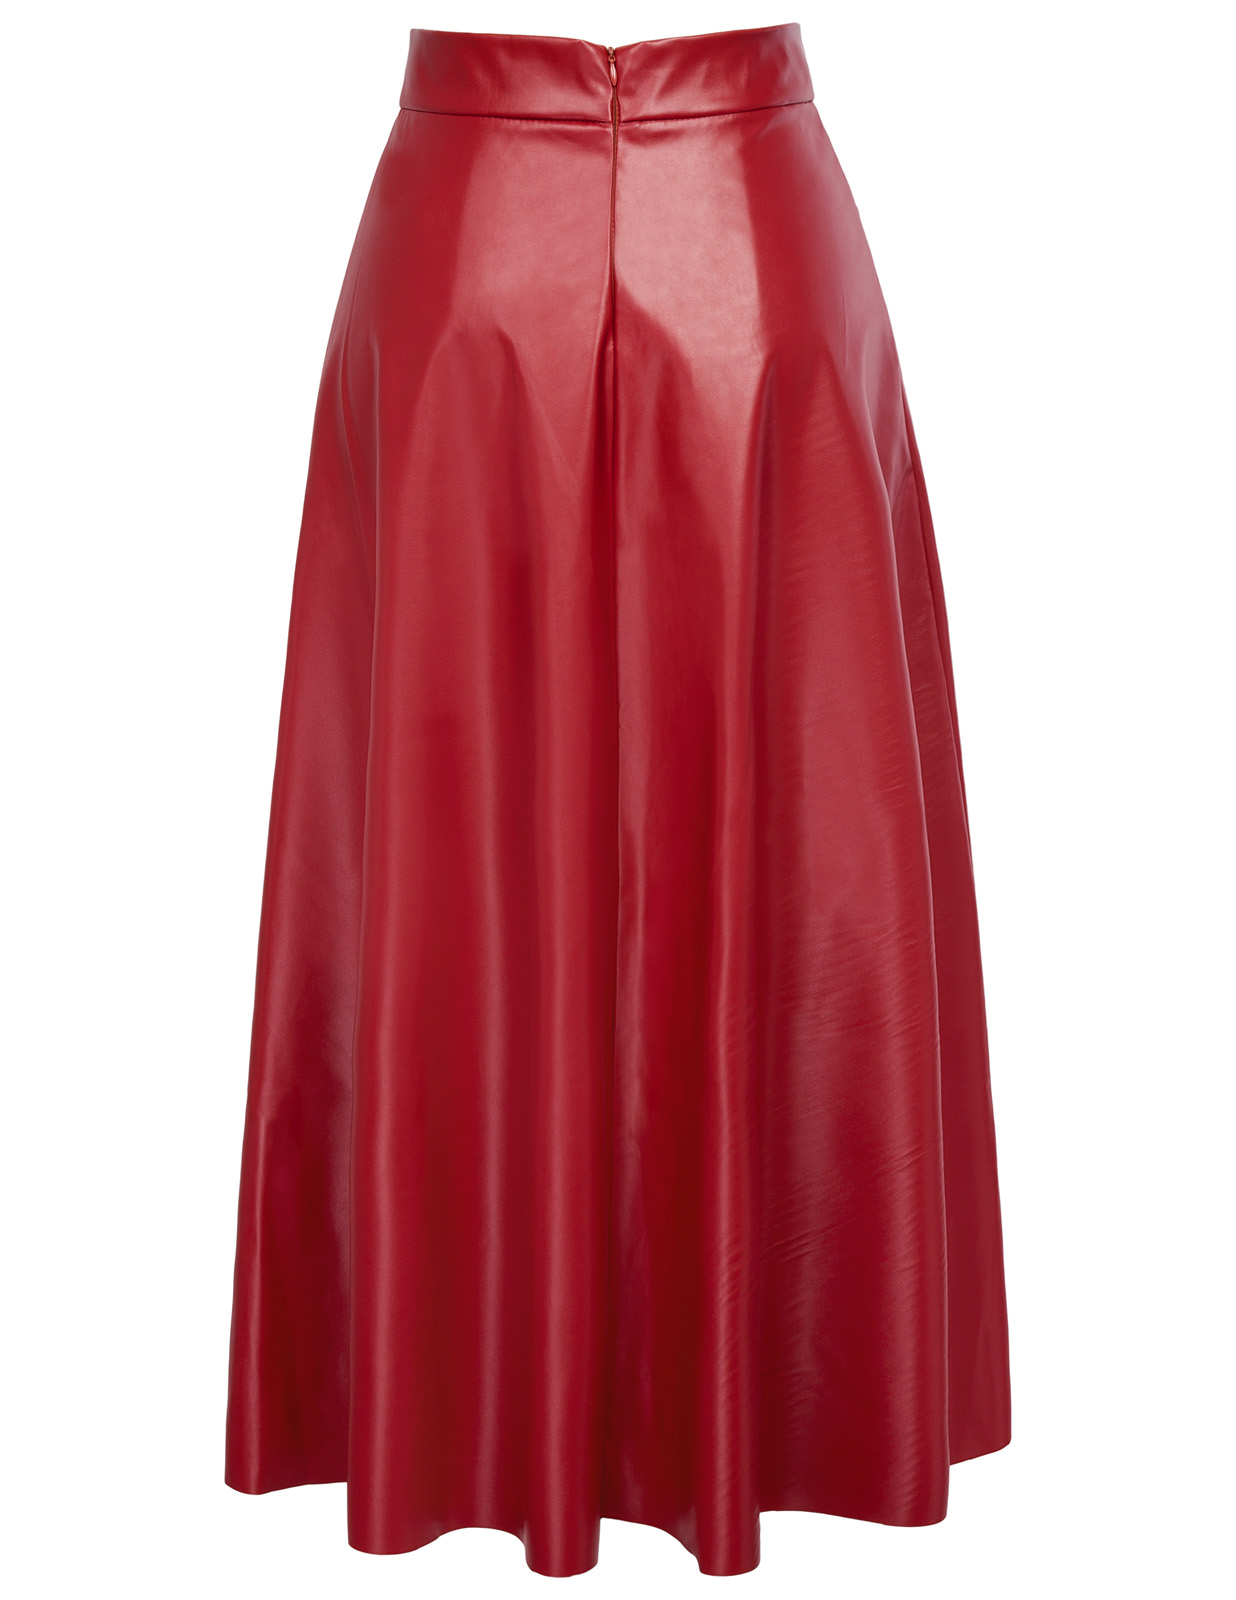 2018 Sping Summer Hot Sale New Arrivals Womens High Waist Synthetic Leather 38 Flared A-Line Skirt Freeshipping